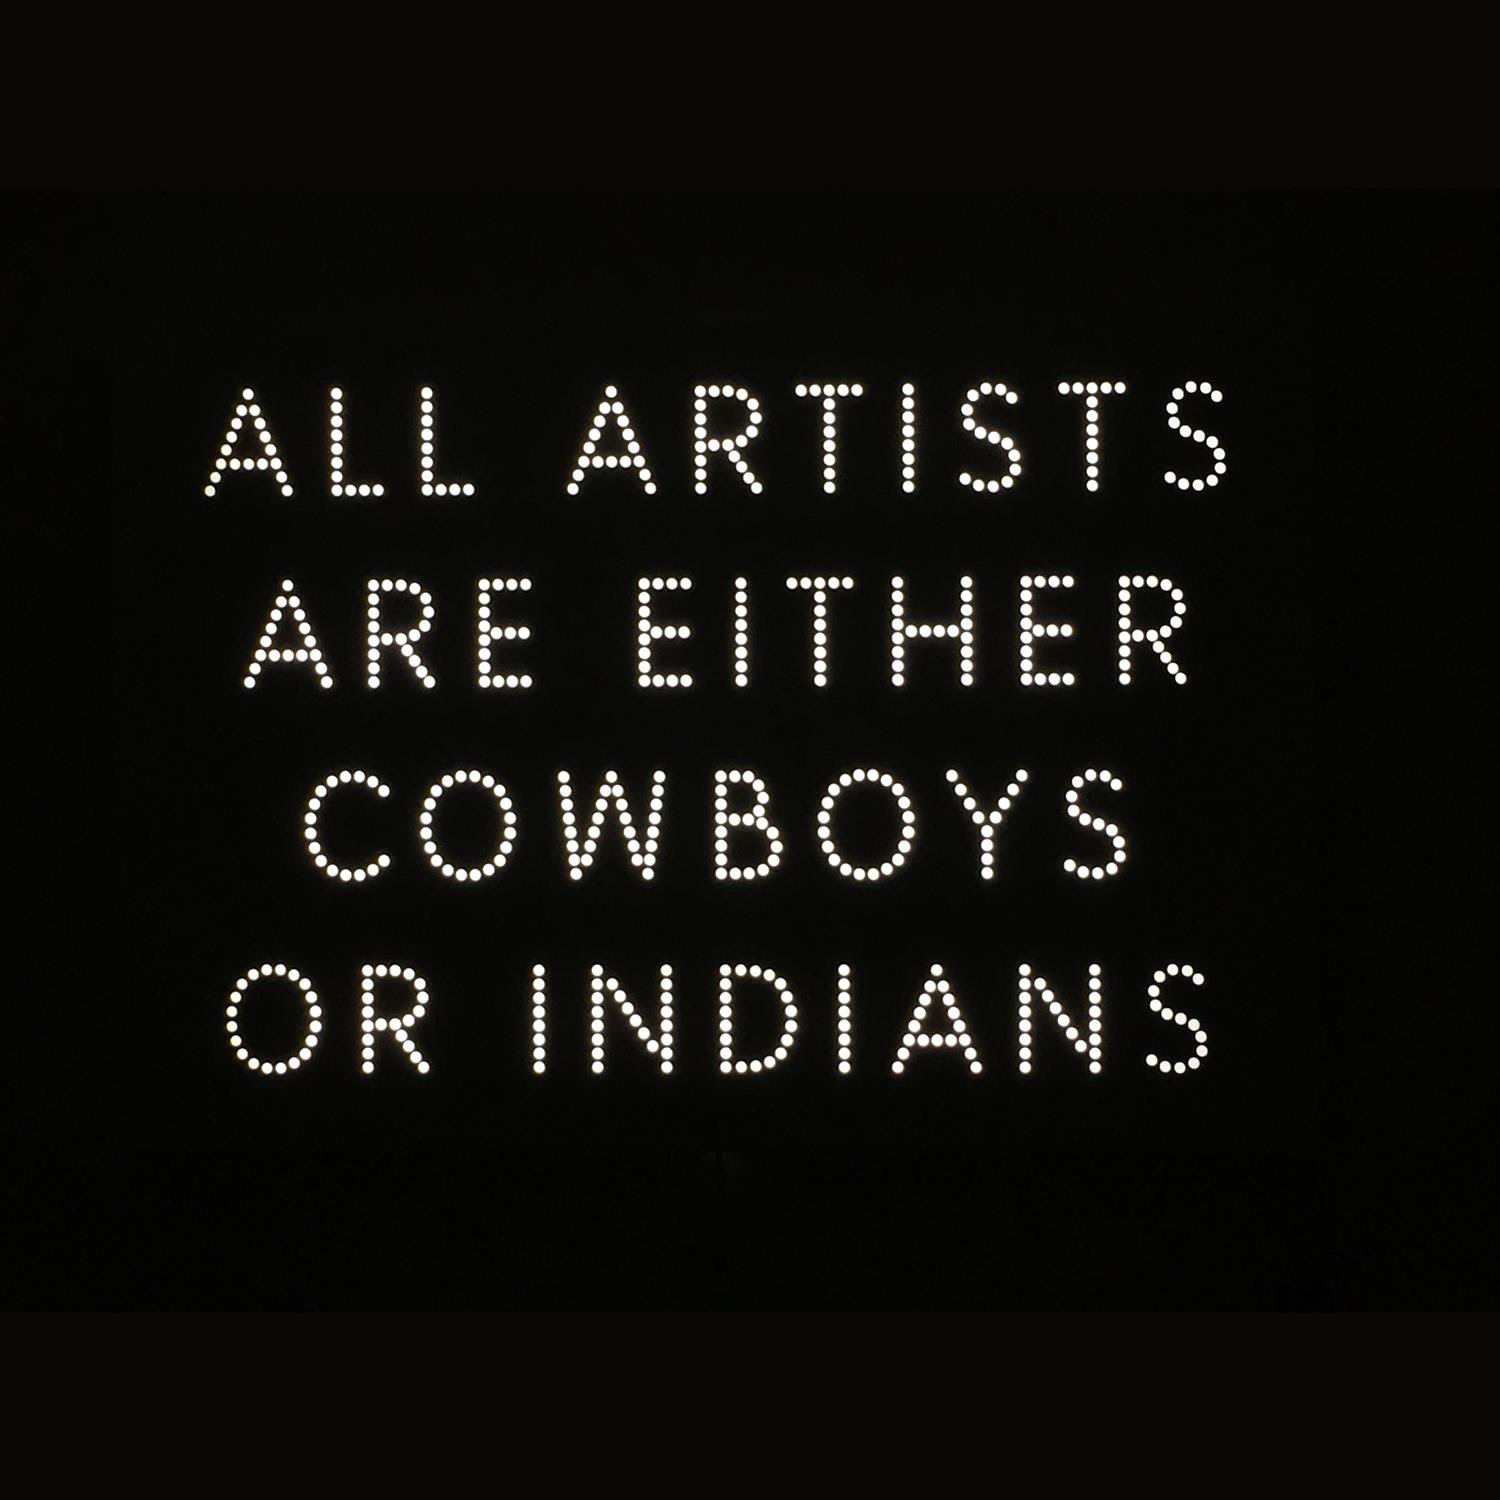 "Unkle announces new album, shares new track ""Cowboys or Indians"" featuring Elliott Power, Mïnk & YSÉE"